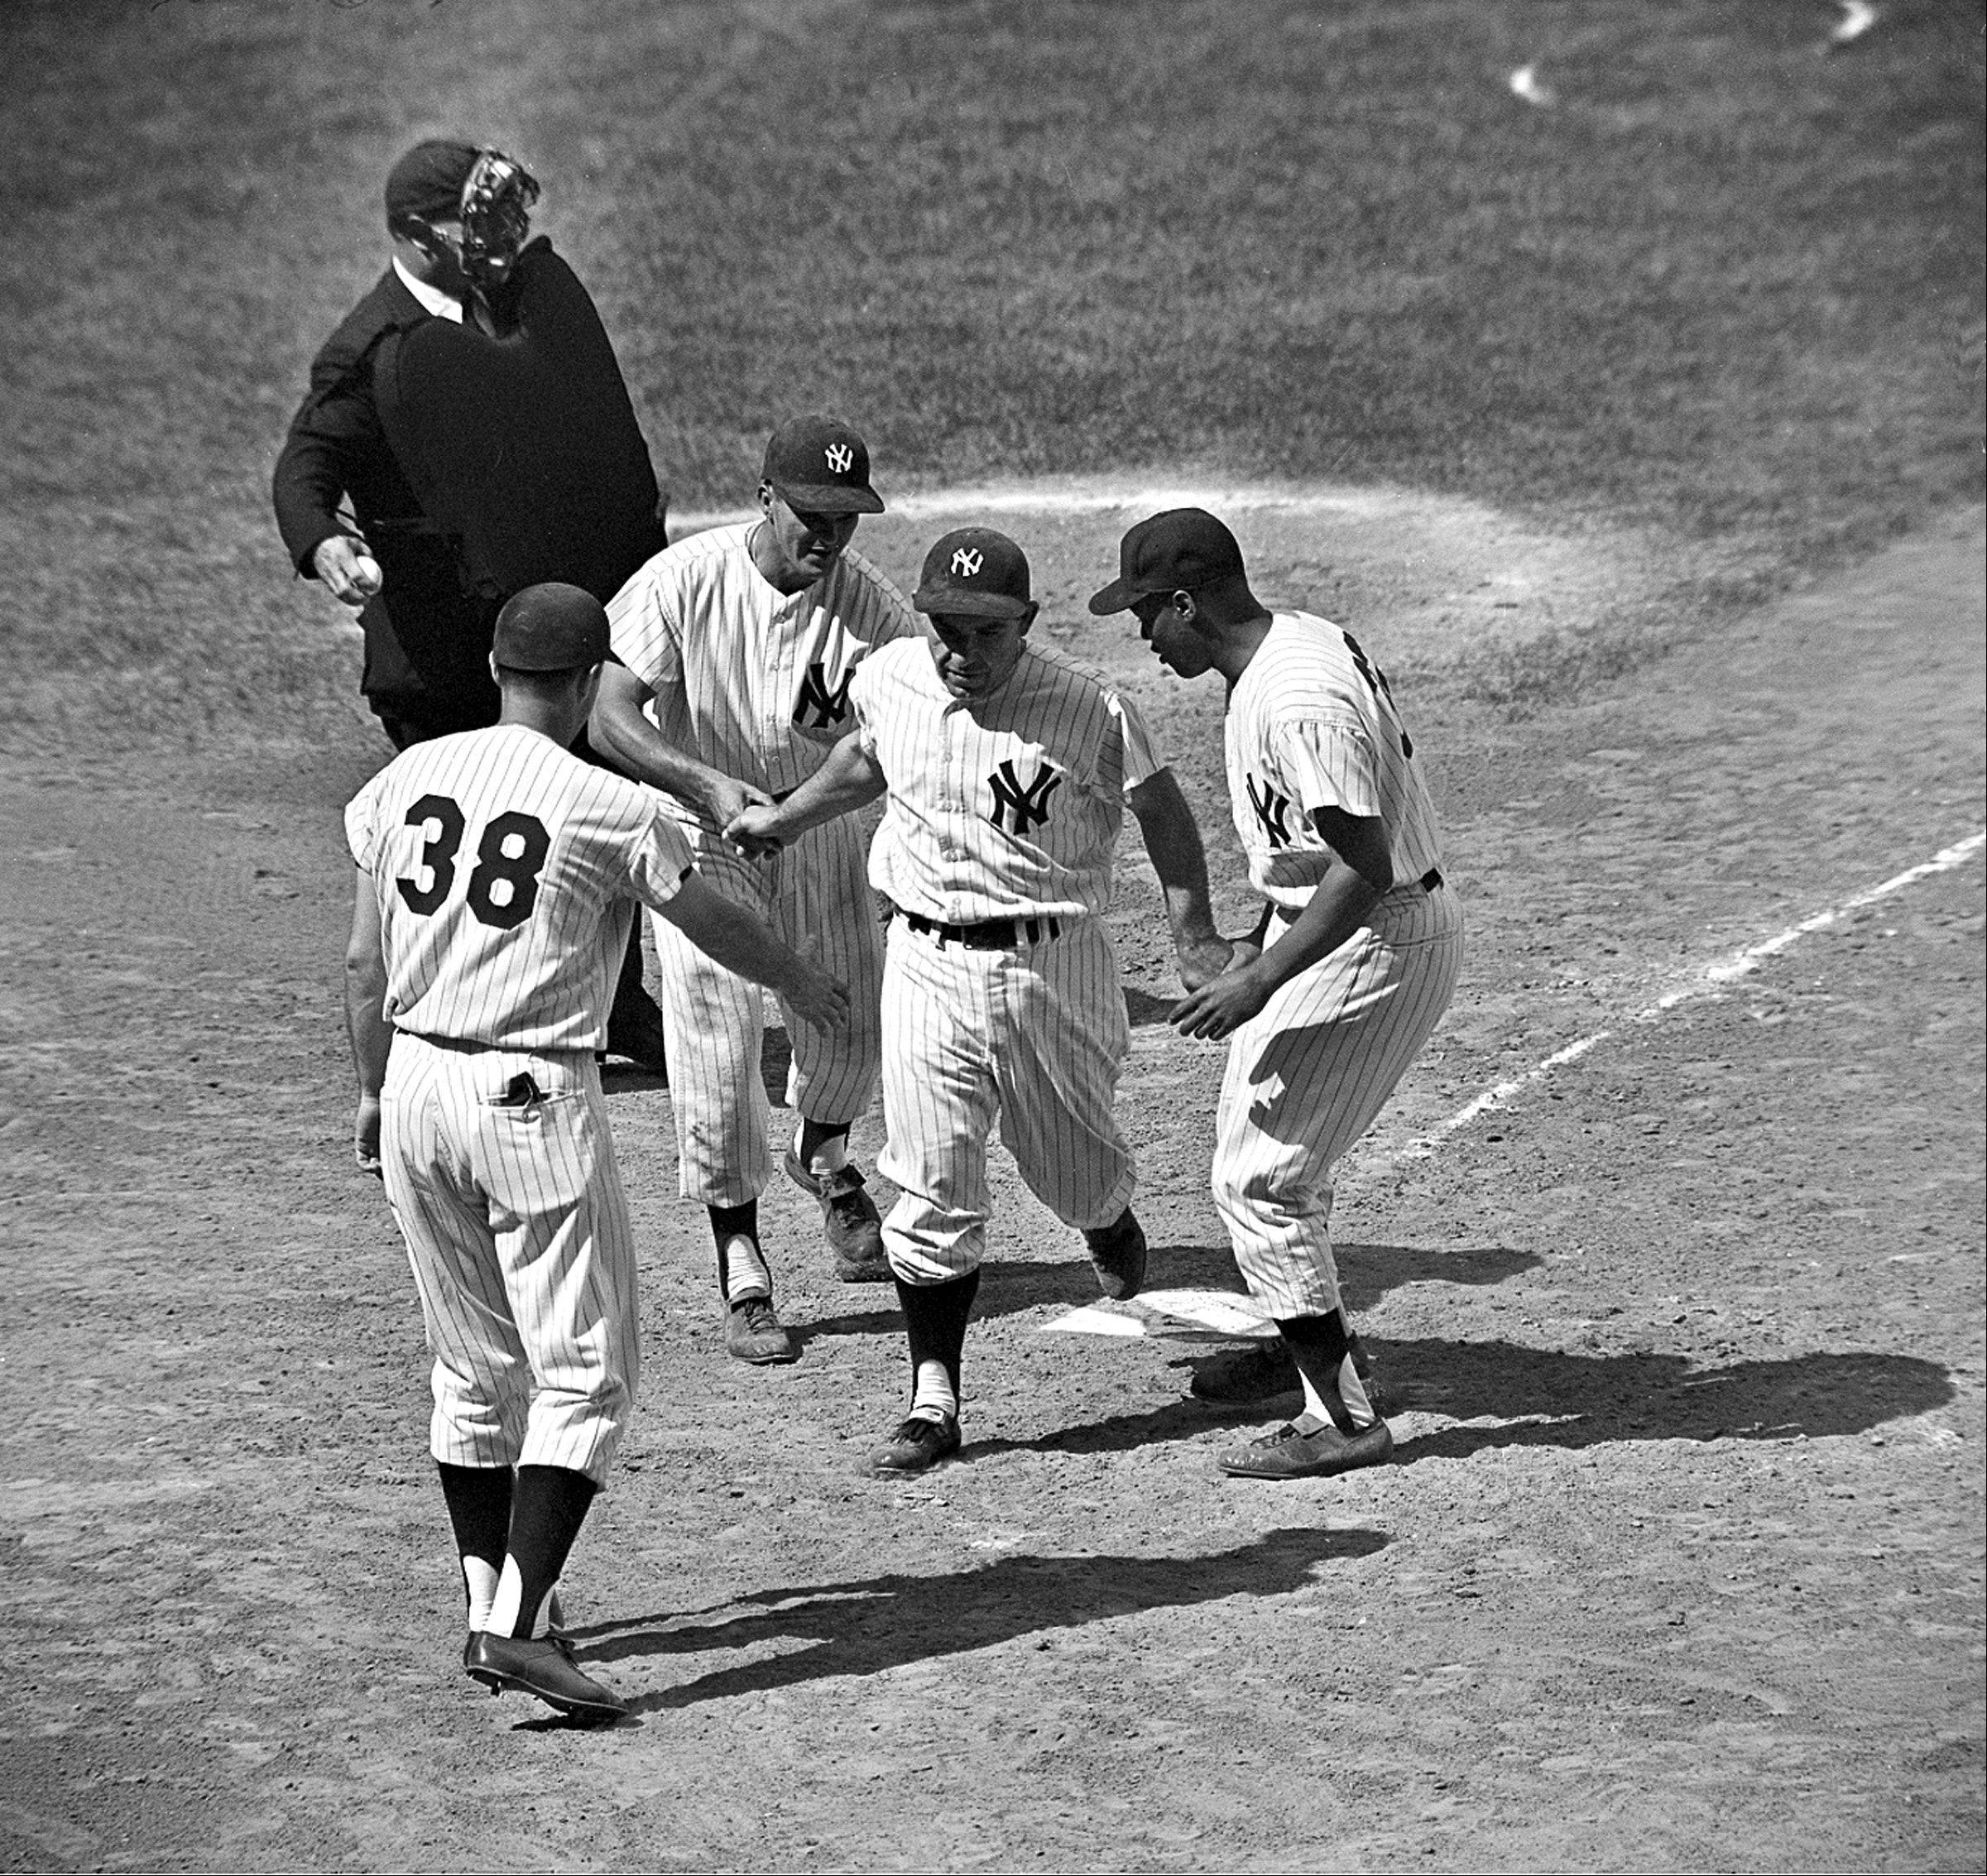 New York Yankees outfielder Yogi Berra receives congratulations from teammates after belting a three-run pinch hit homer in the seventh inning against the Baltimore Orioles at Yankee Stadium in the Bronx, N.Y., June 9, 1962. The game marks Berra's appearance in his 2,000th major league ball game. From left are, John Blanchard, next batter; Bill Skowron; Berra; and Elston Howard, who scored ahead of Berra. The Yankees won, 7-3.